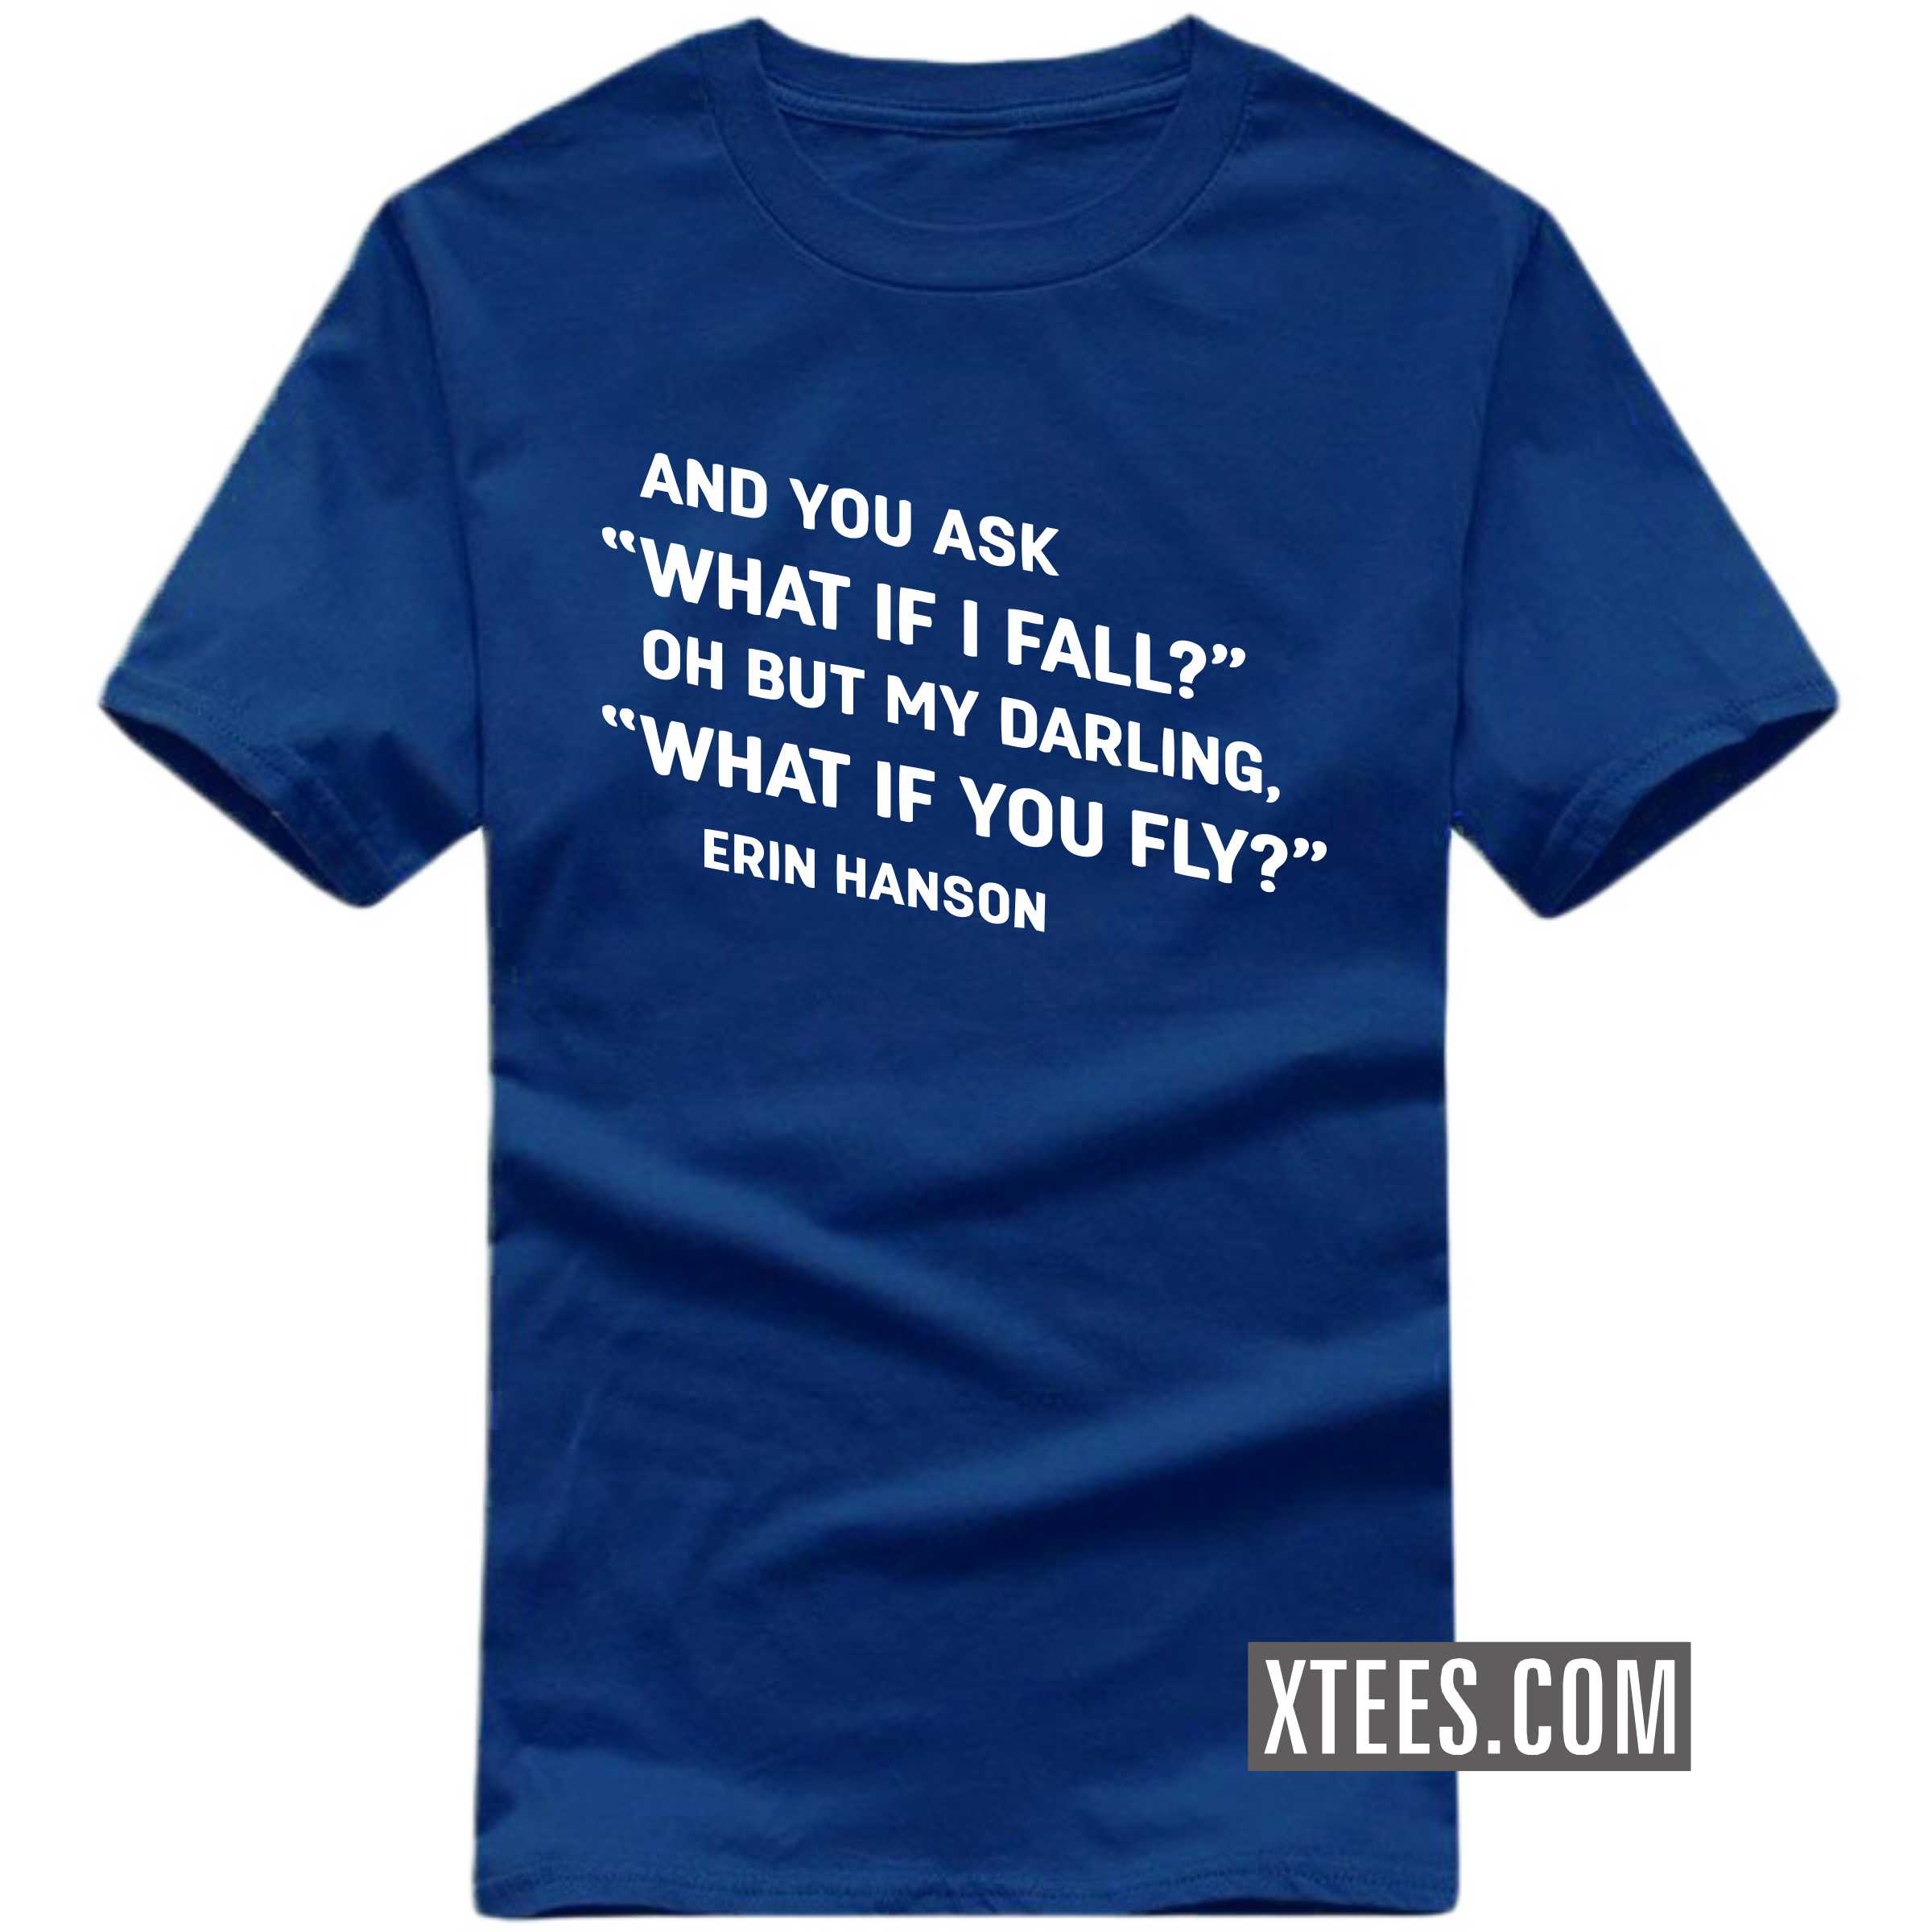 And You Ask What If I Fall? Oh But If My Darling, What If You Fly? Motivational Quotes T-shirt image